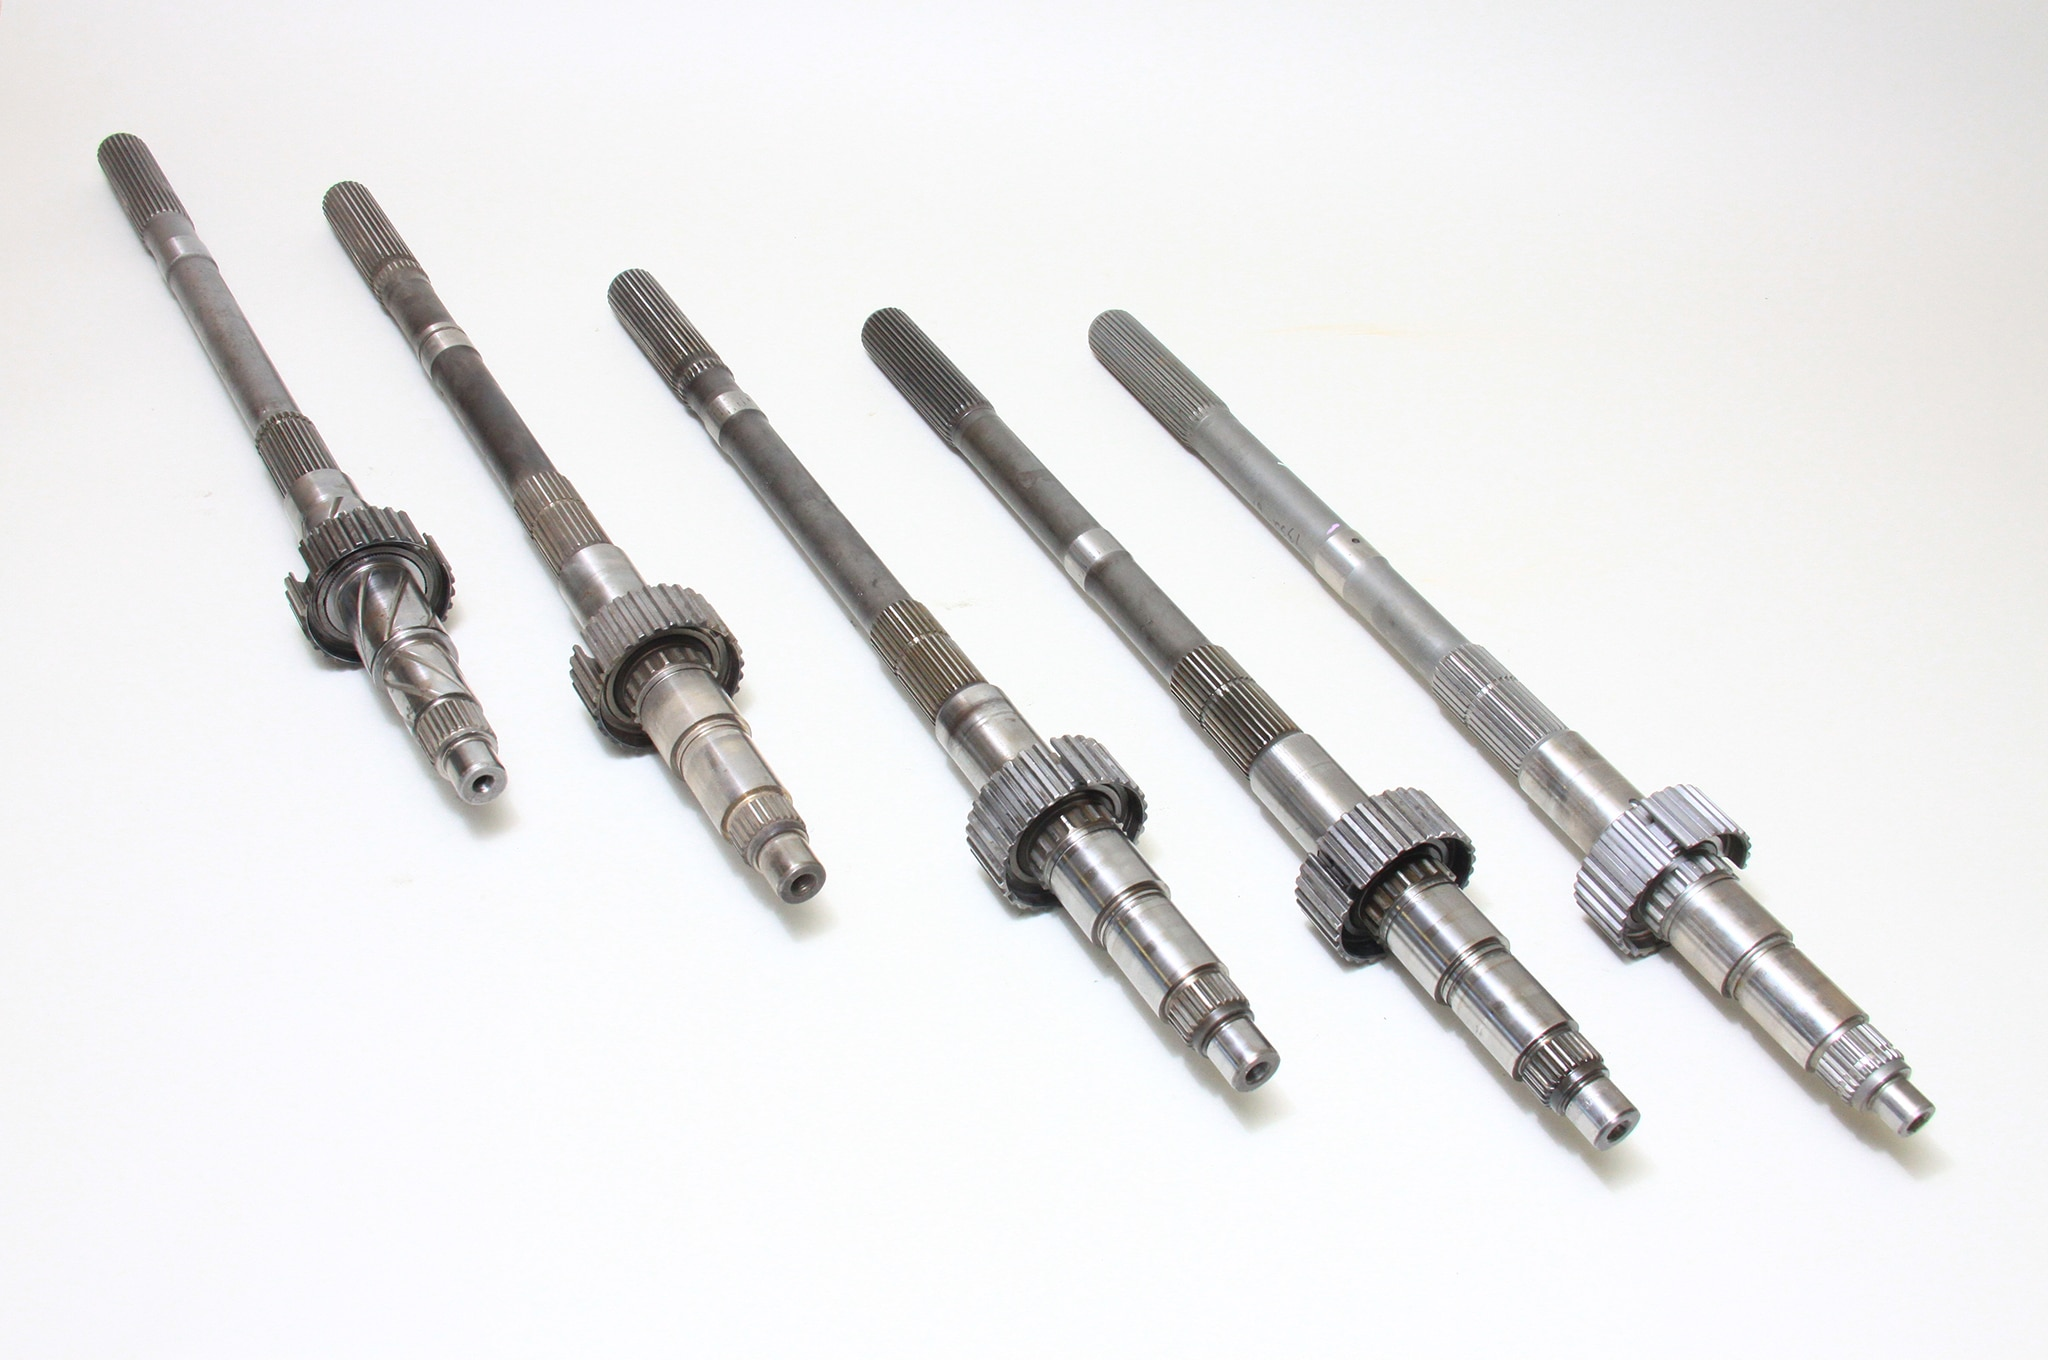 Five T 5 Output Shafts